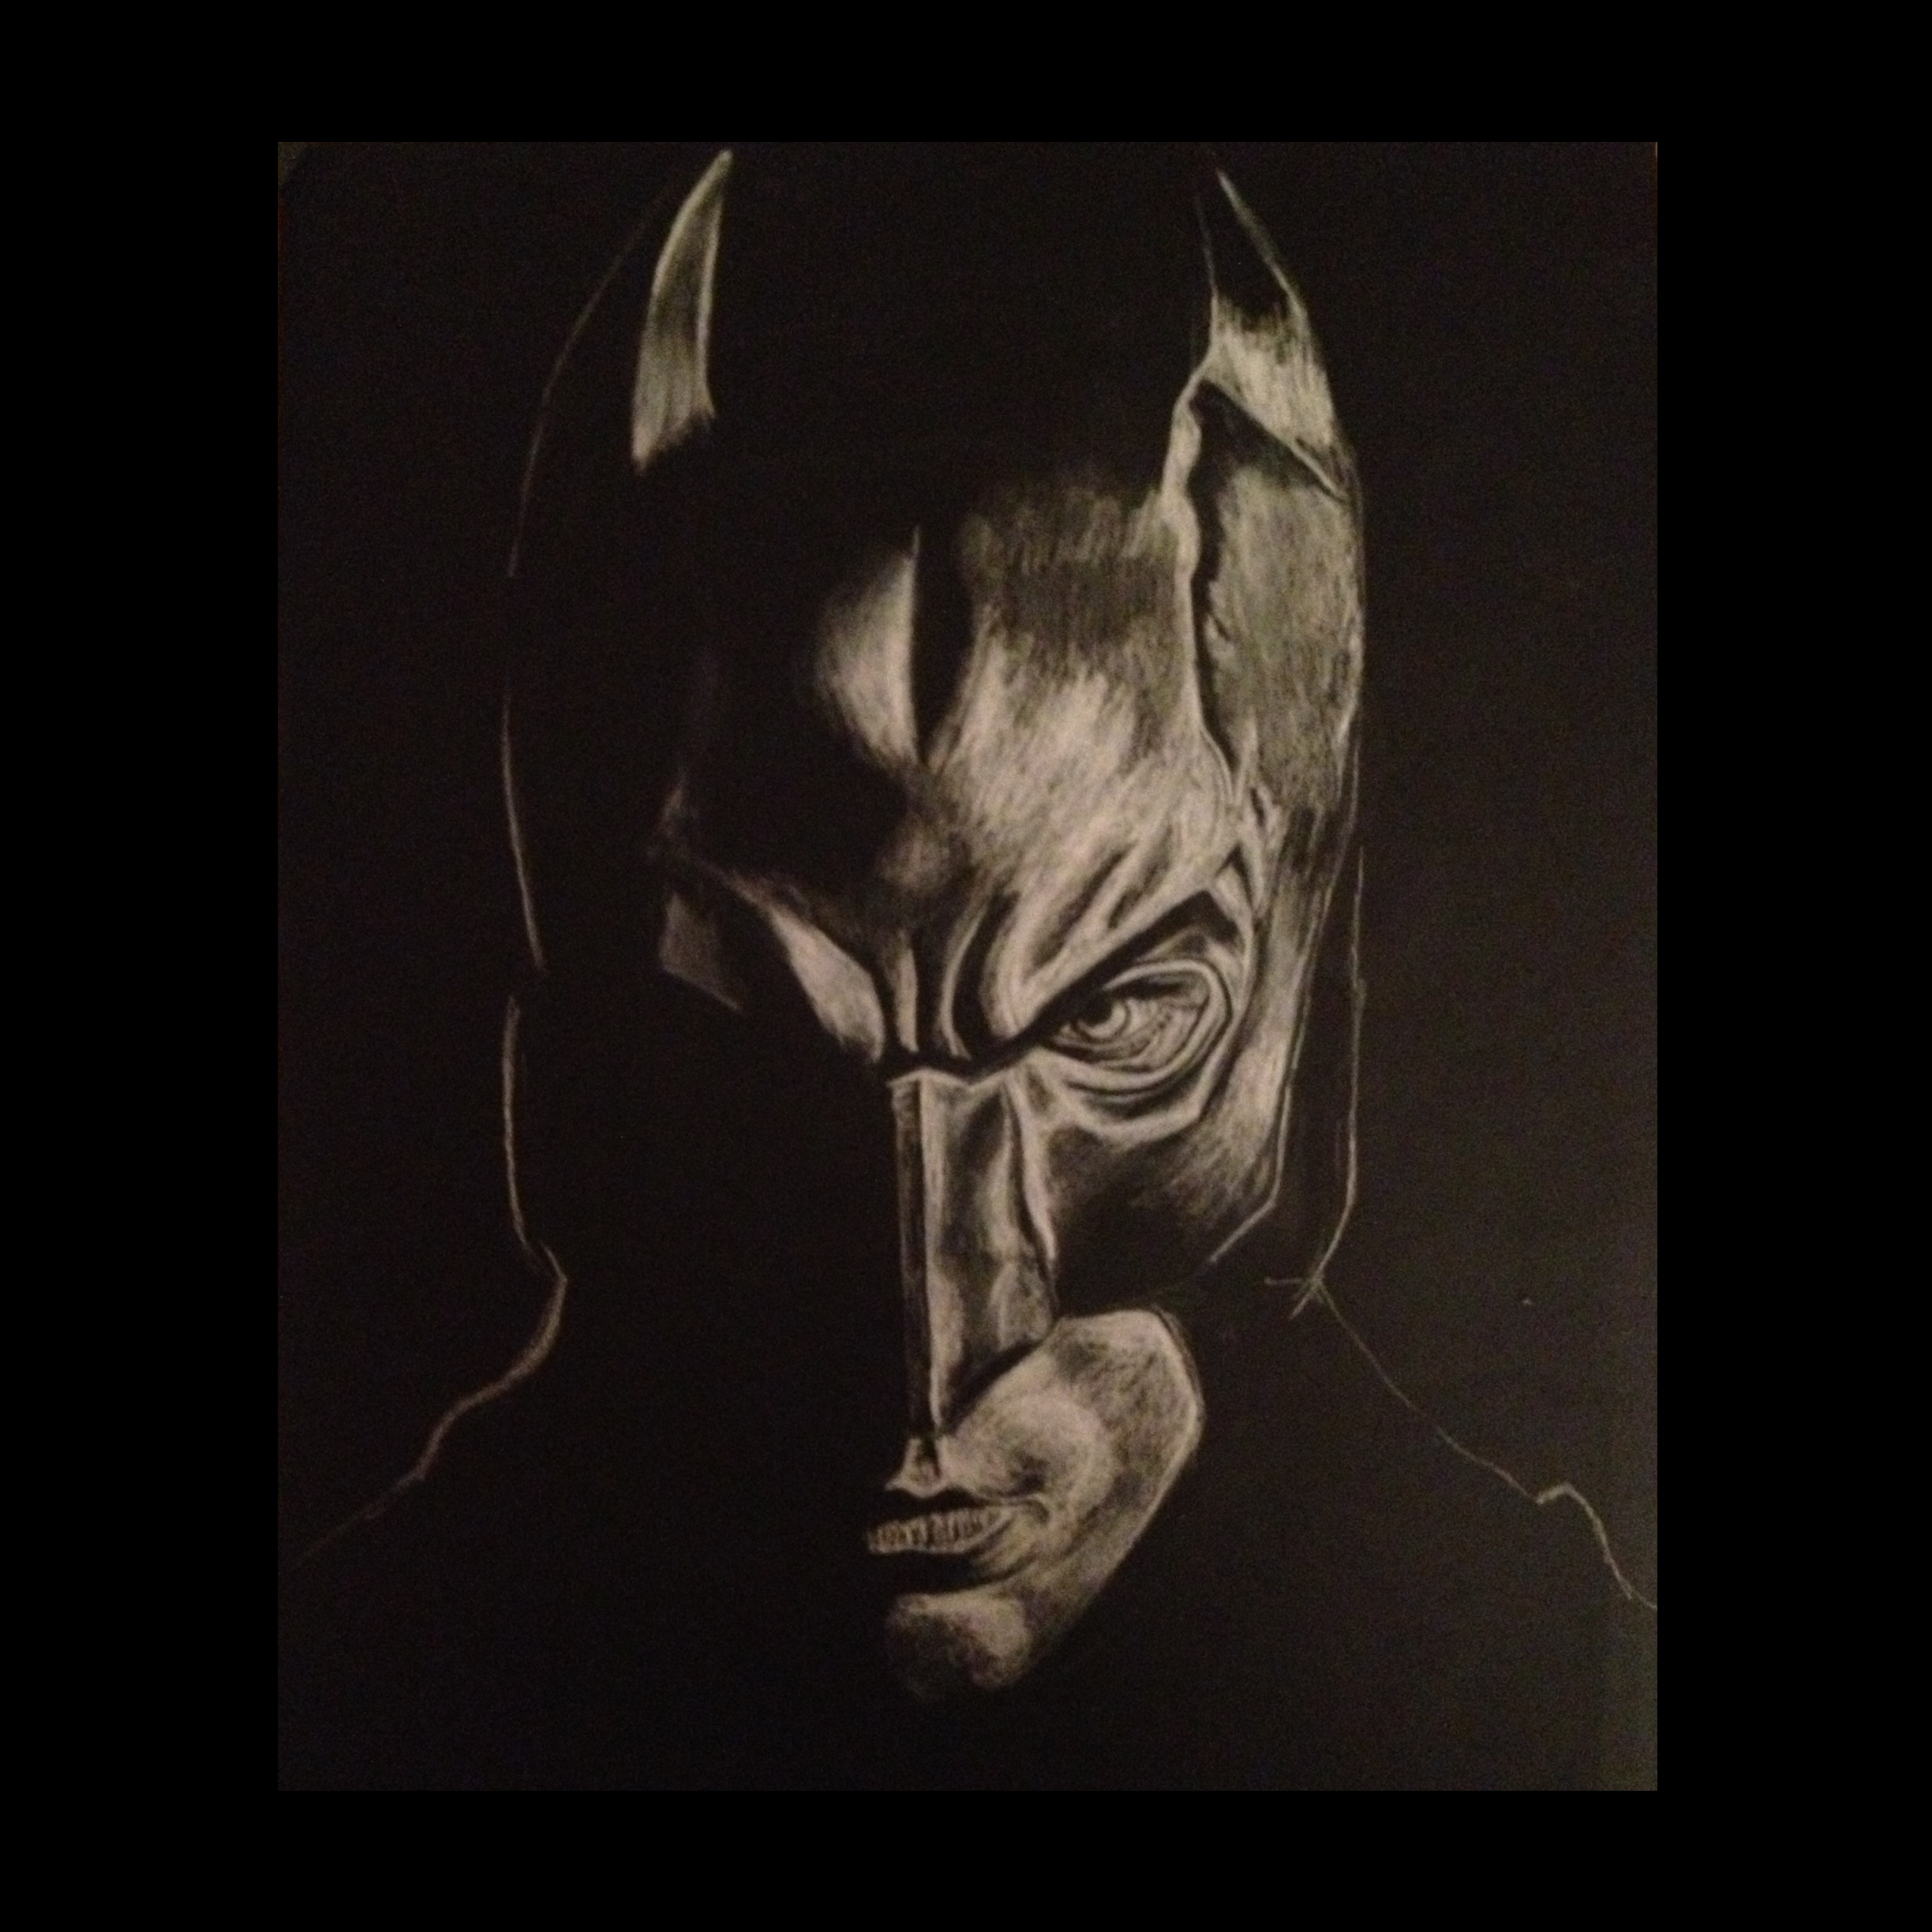 Drawn paper batman By White paper #batman #drawing